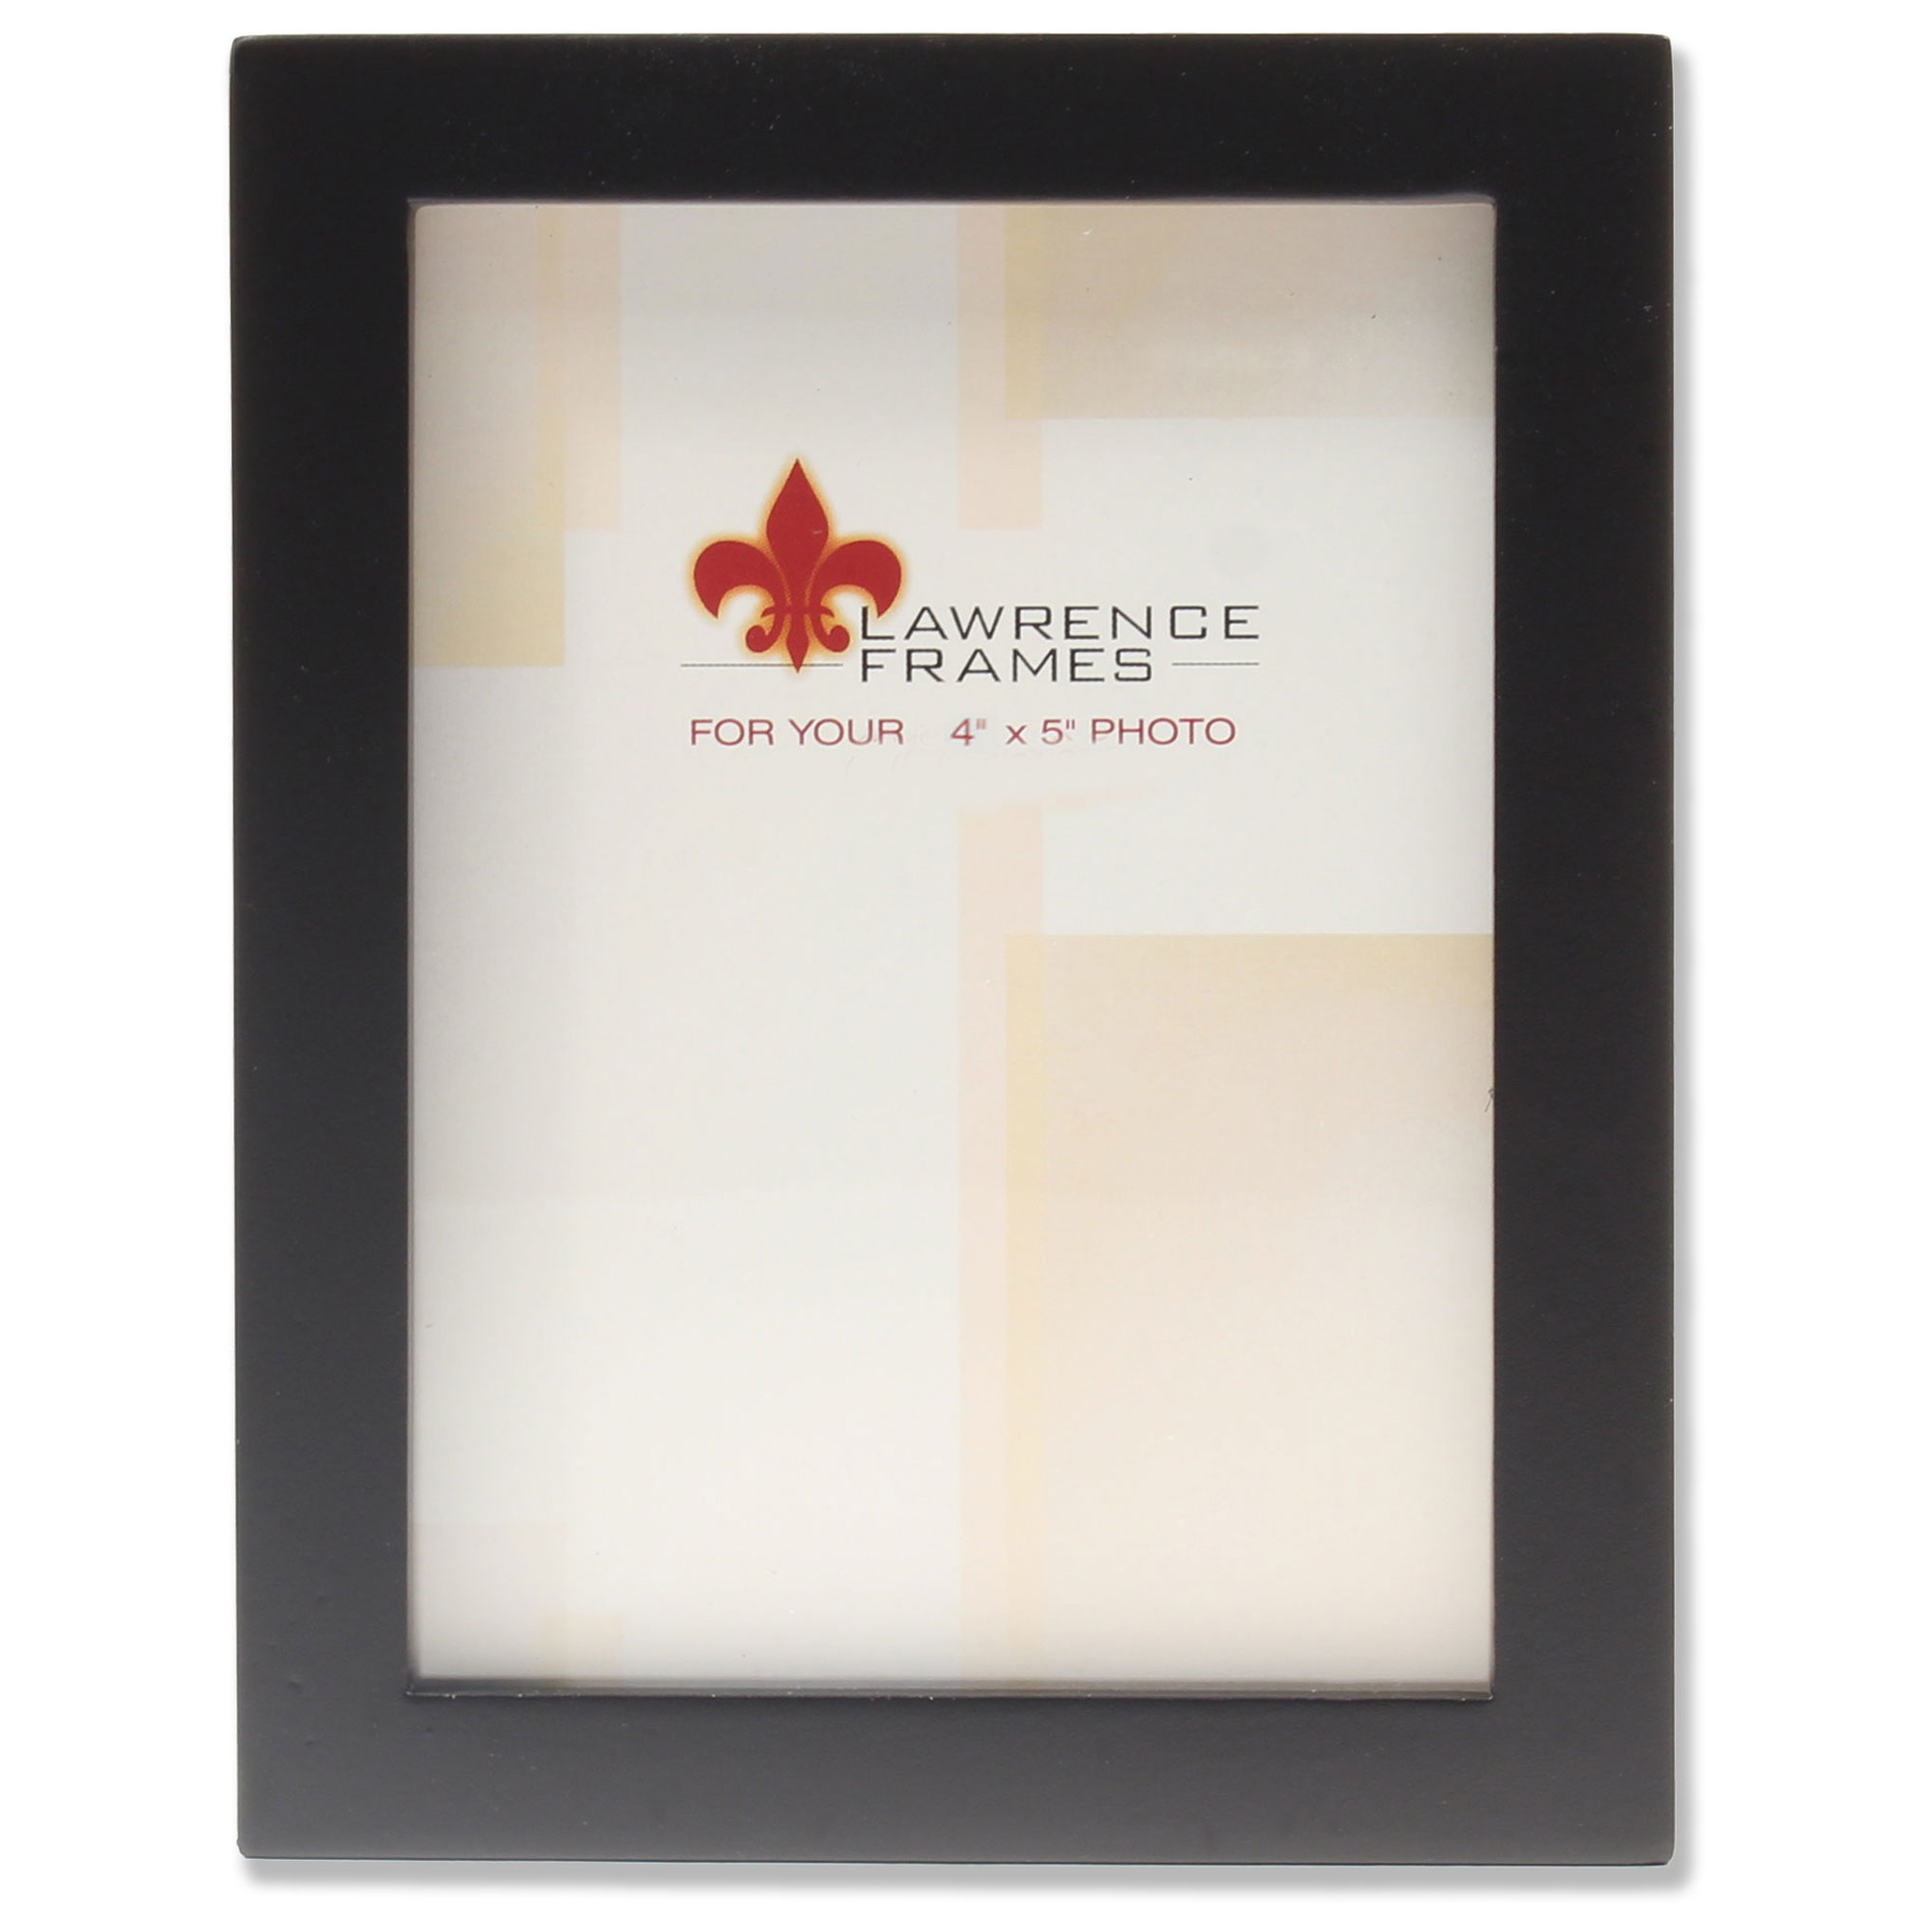 4x5 Black Wood Picture Frame - Gallery Collection | PhotoFrames.net